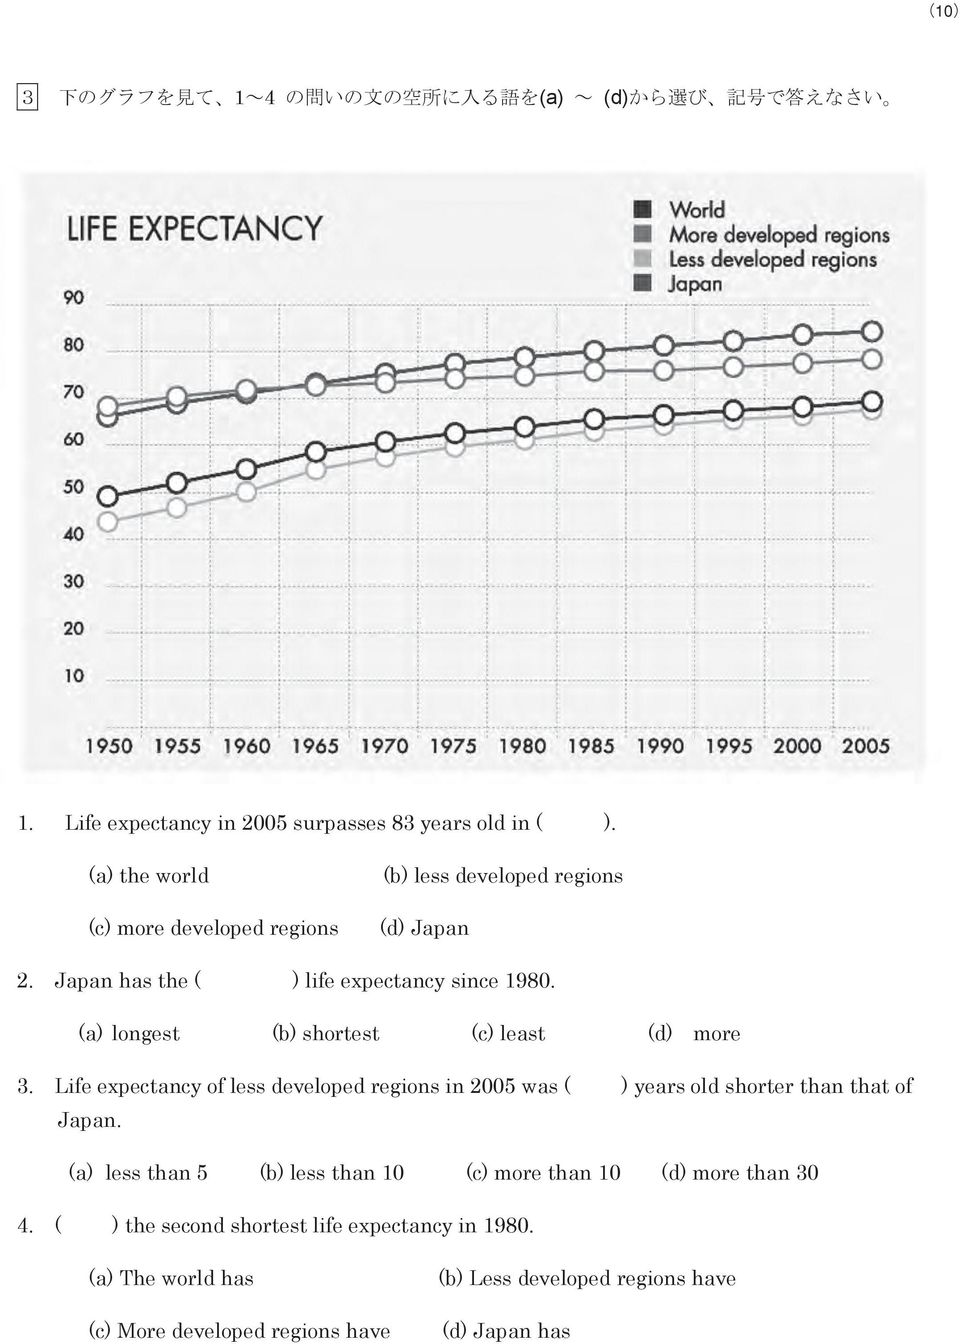 (a) longest (b) shortest (c) least (d) more 3. Life expectancy of less developed regions in 2005 was ( ) years old shorter than that of Japan.